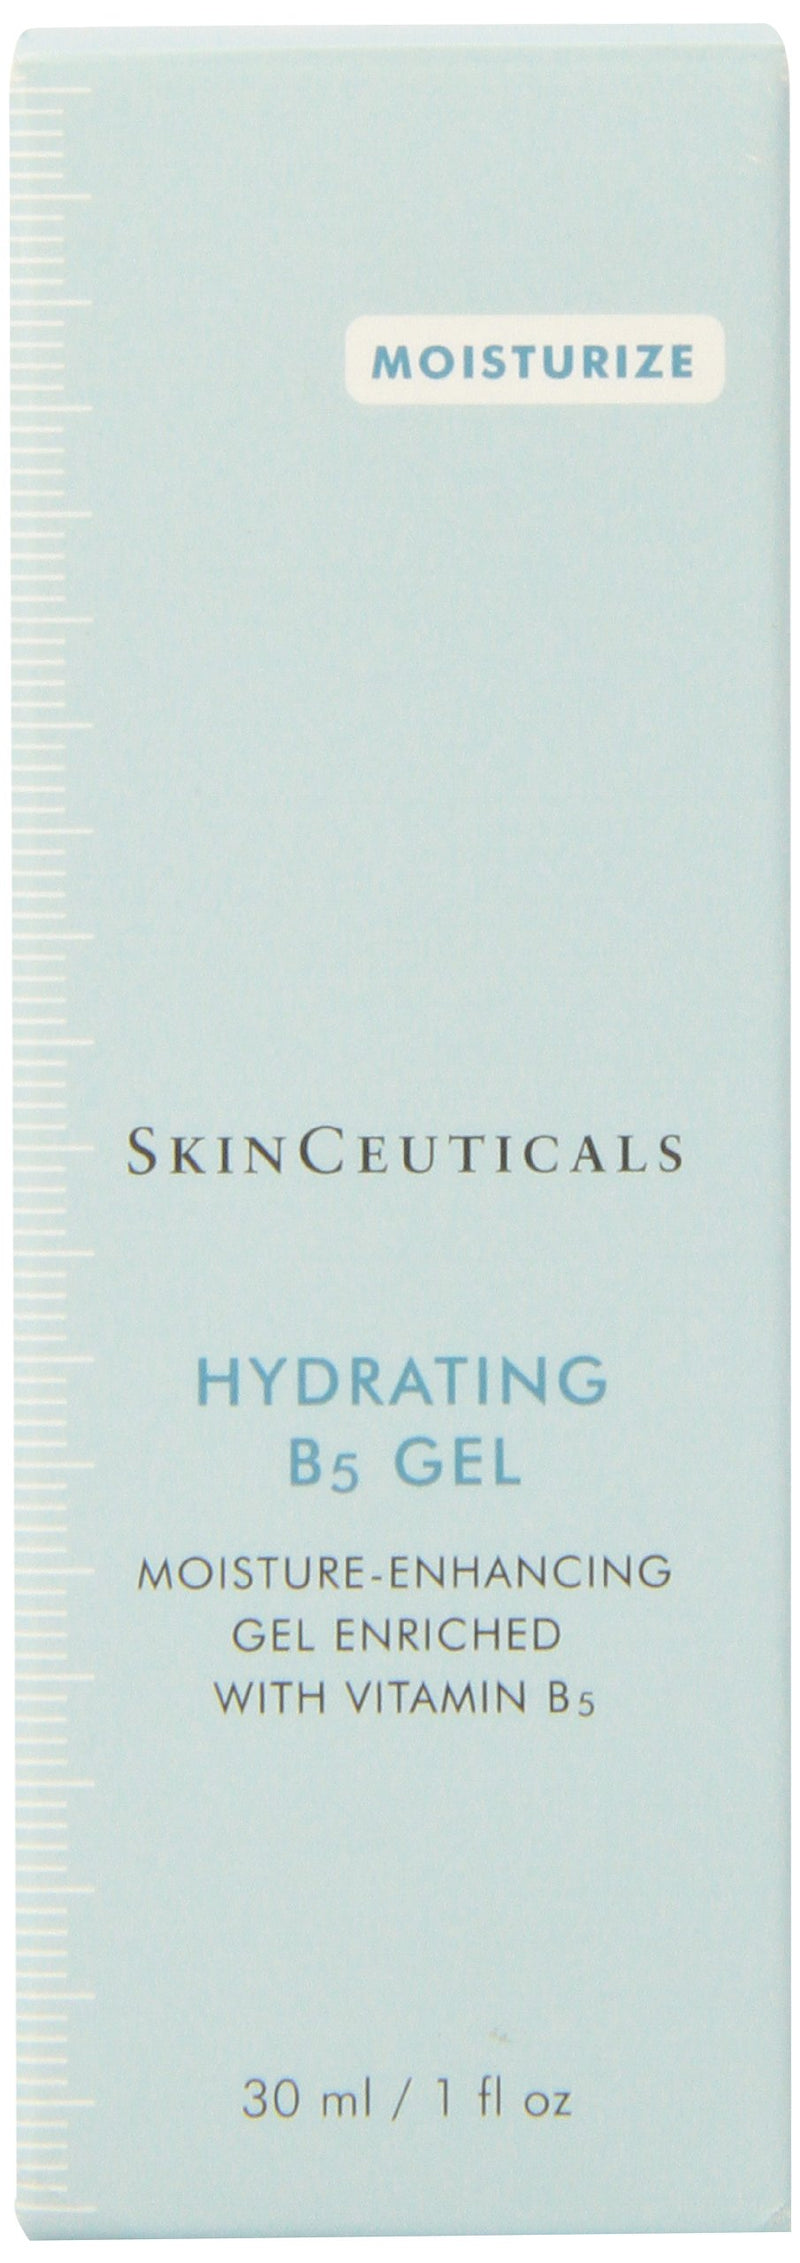 Skinceuticals Hydrating B5 Moisture-Enhancing Gel, 1-Ounce Bottle